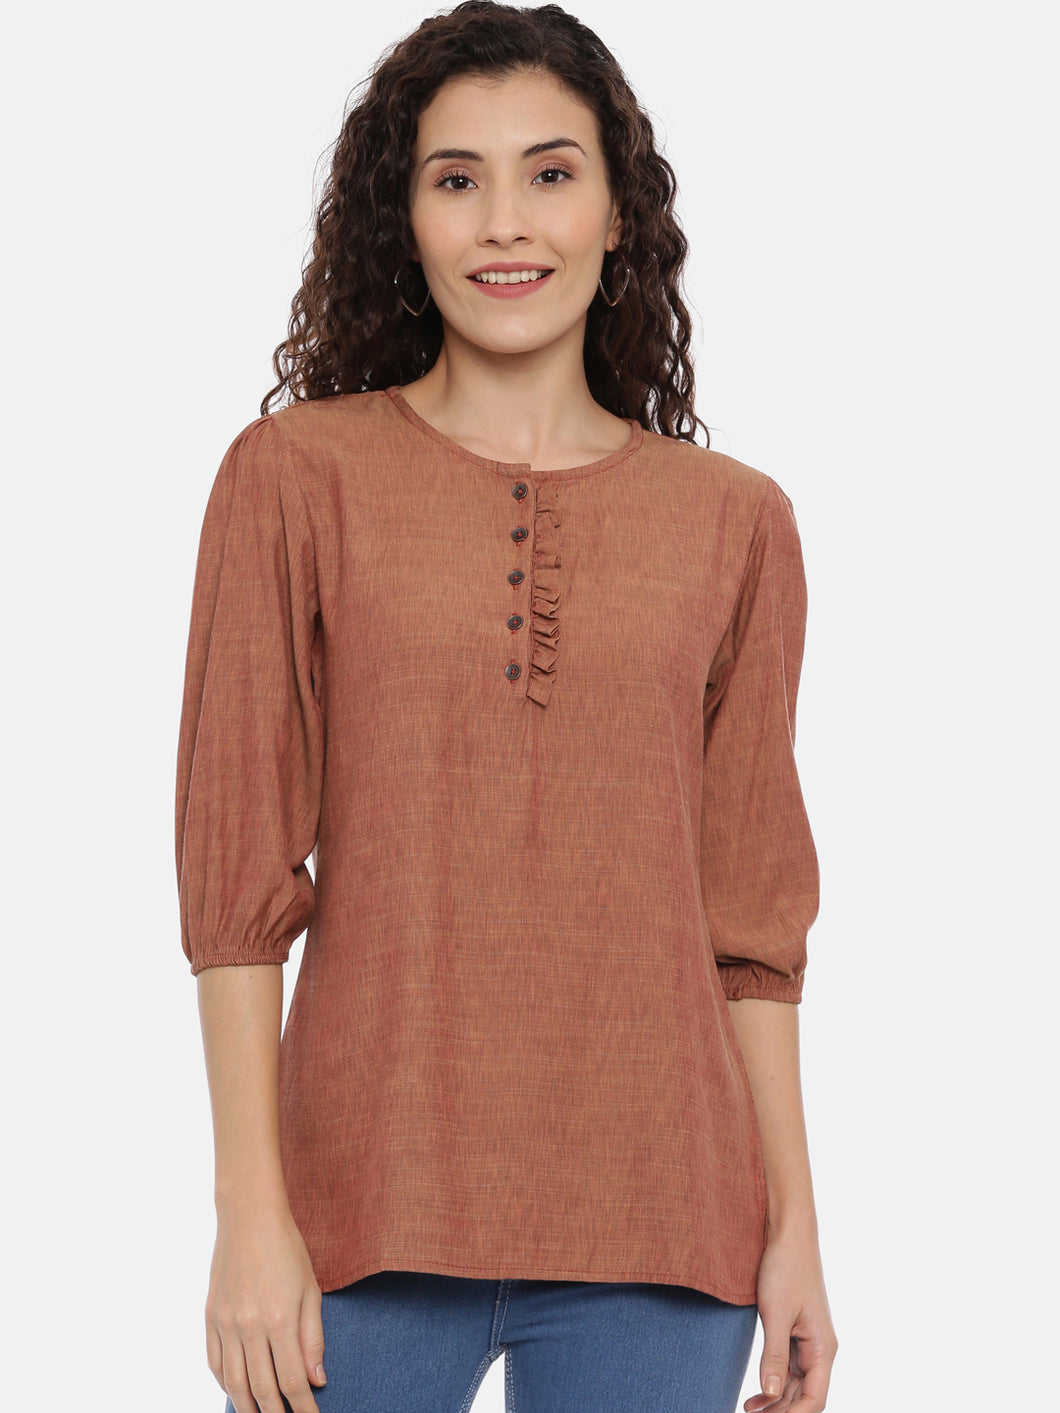 Arana Women's Rayon Blend Coffee Color Top With Round Neck With Ruffles